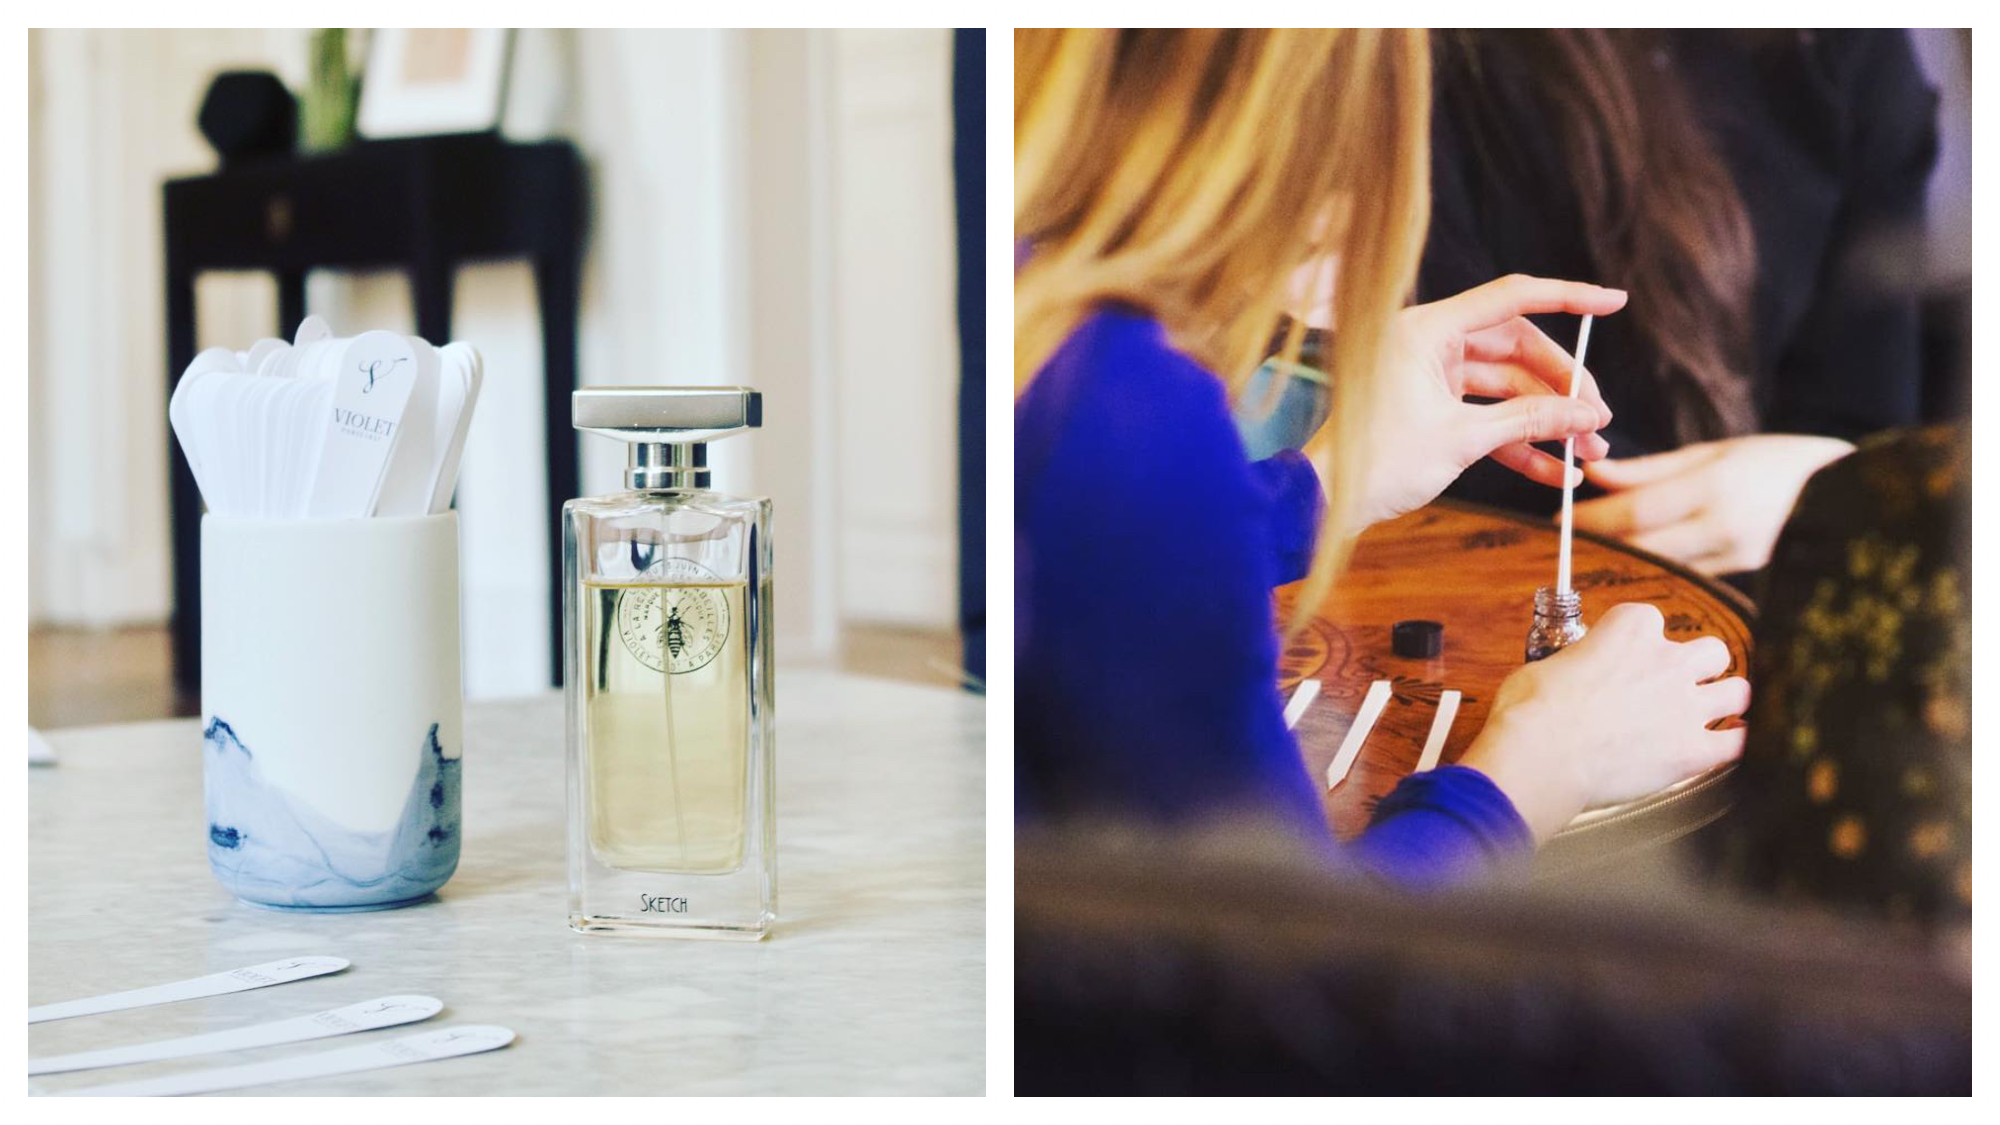 On left: A sleek bottle of perfume sits next to tester strips, awaiting participants at a workshop run by Rendez-Vous Parfum, which specializes in perfume walks, workshops, and sensory events. On right: A woman carefully dips a tester stick into a bottle of perfume at an event hosted by Rendez-Vous Parfum, where participants can learn more about the history and creation of this luxury item.